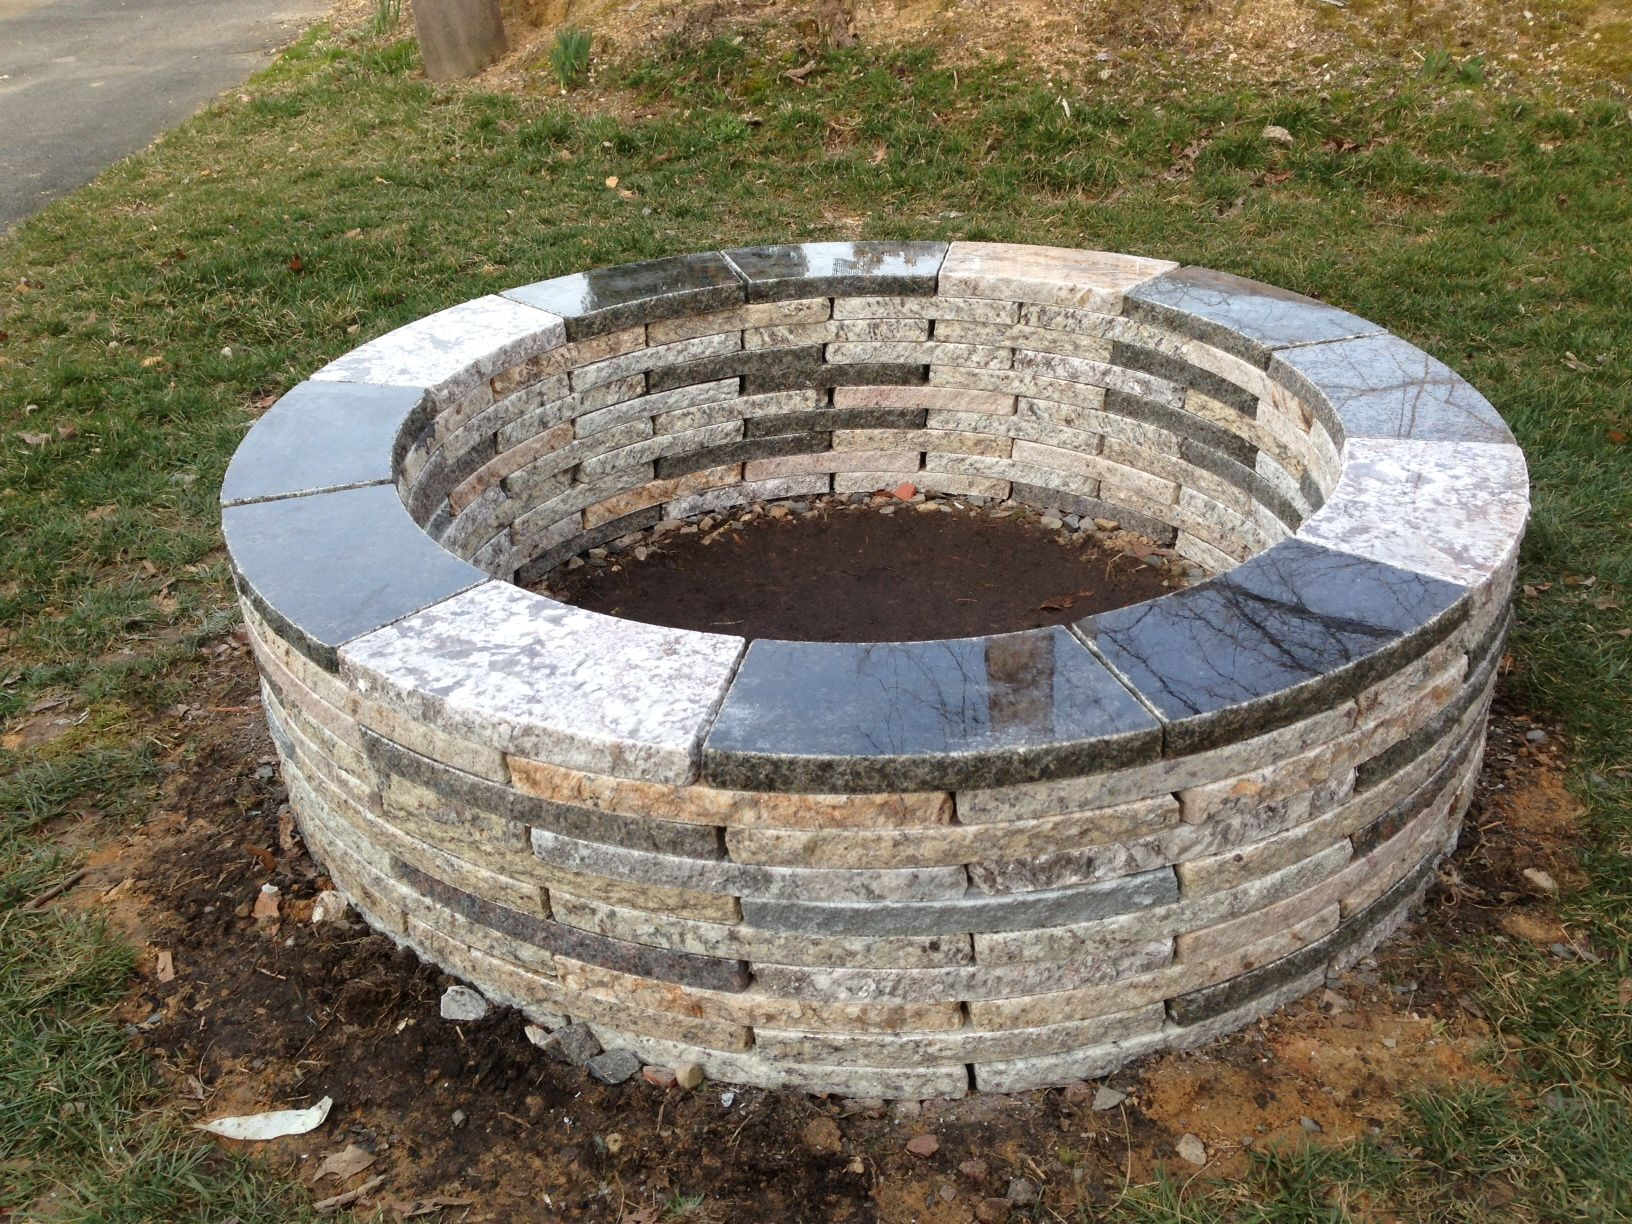 48 Granite Fire Pit Made By Www Foreverstone Biz Made From 100 Recycled Material Outside Fire Pits Fire Pit Fire Pit Kit